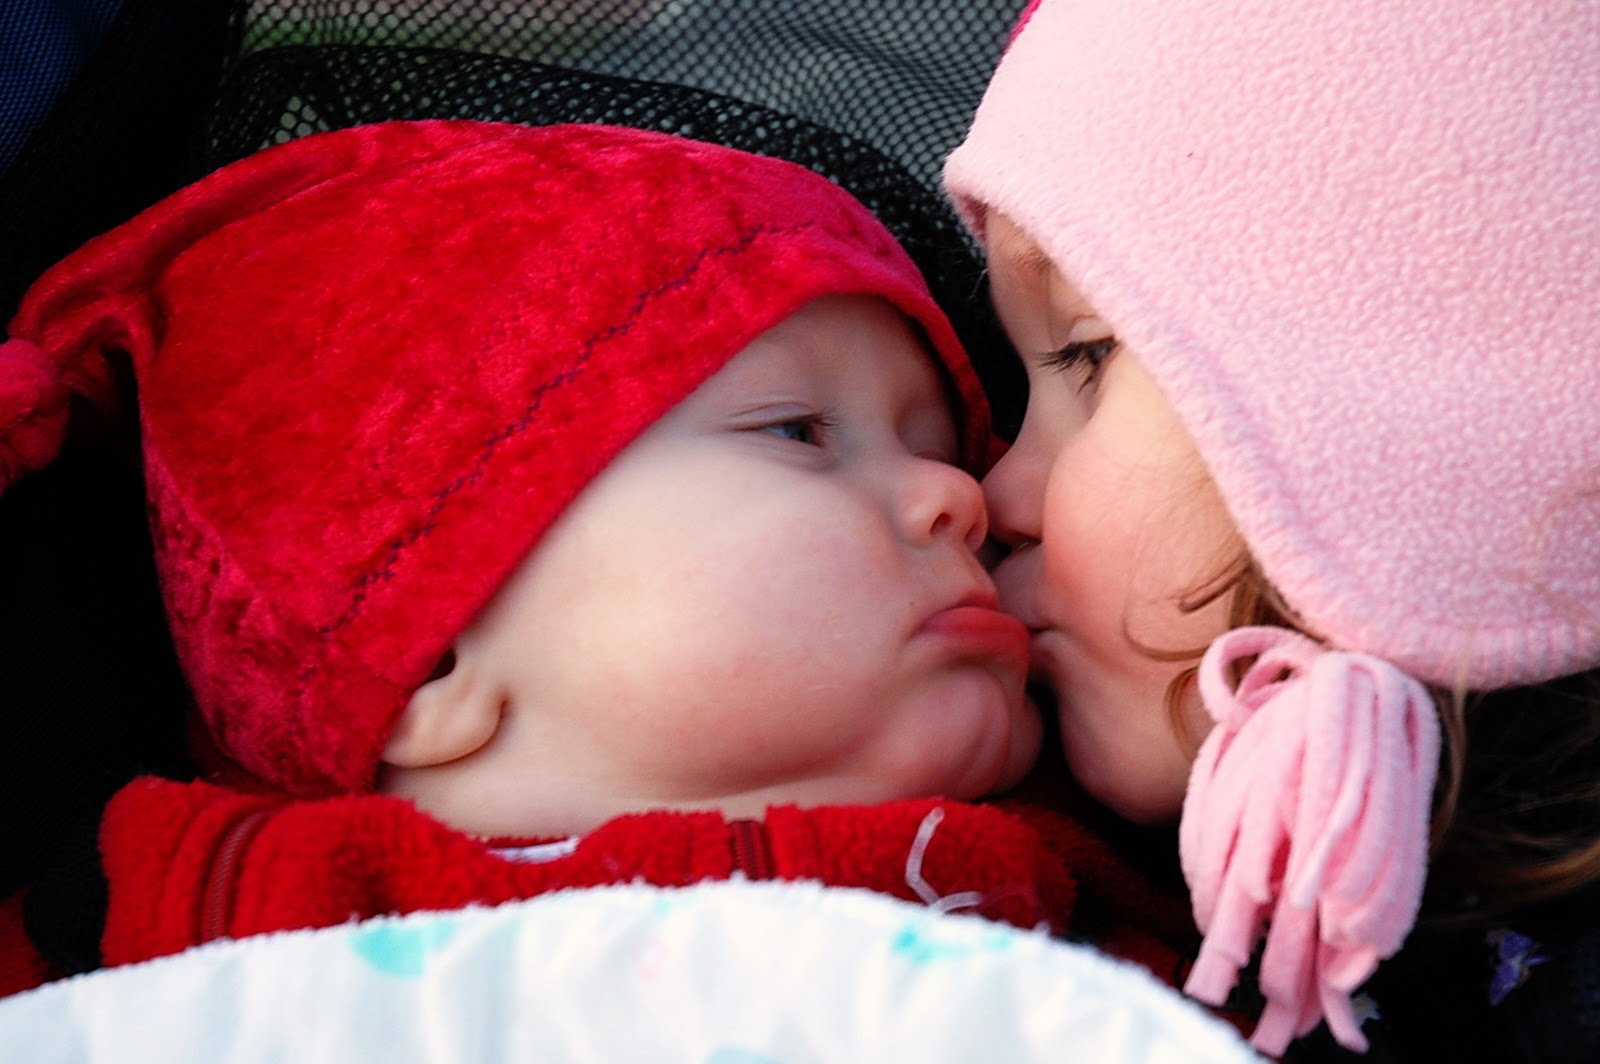 http://3.bp.blogspot.com/_Bopl9F3NAcM/TI7v_o5Pn8I/AAAAAAAABtM/UH660njr3jY/s1600/baby_girl_and_baby_boy_child_kiss.jpg